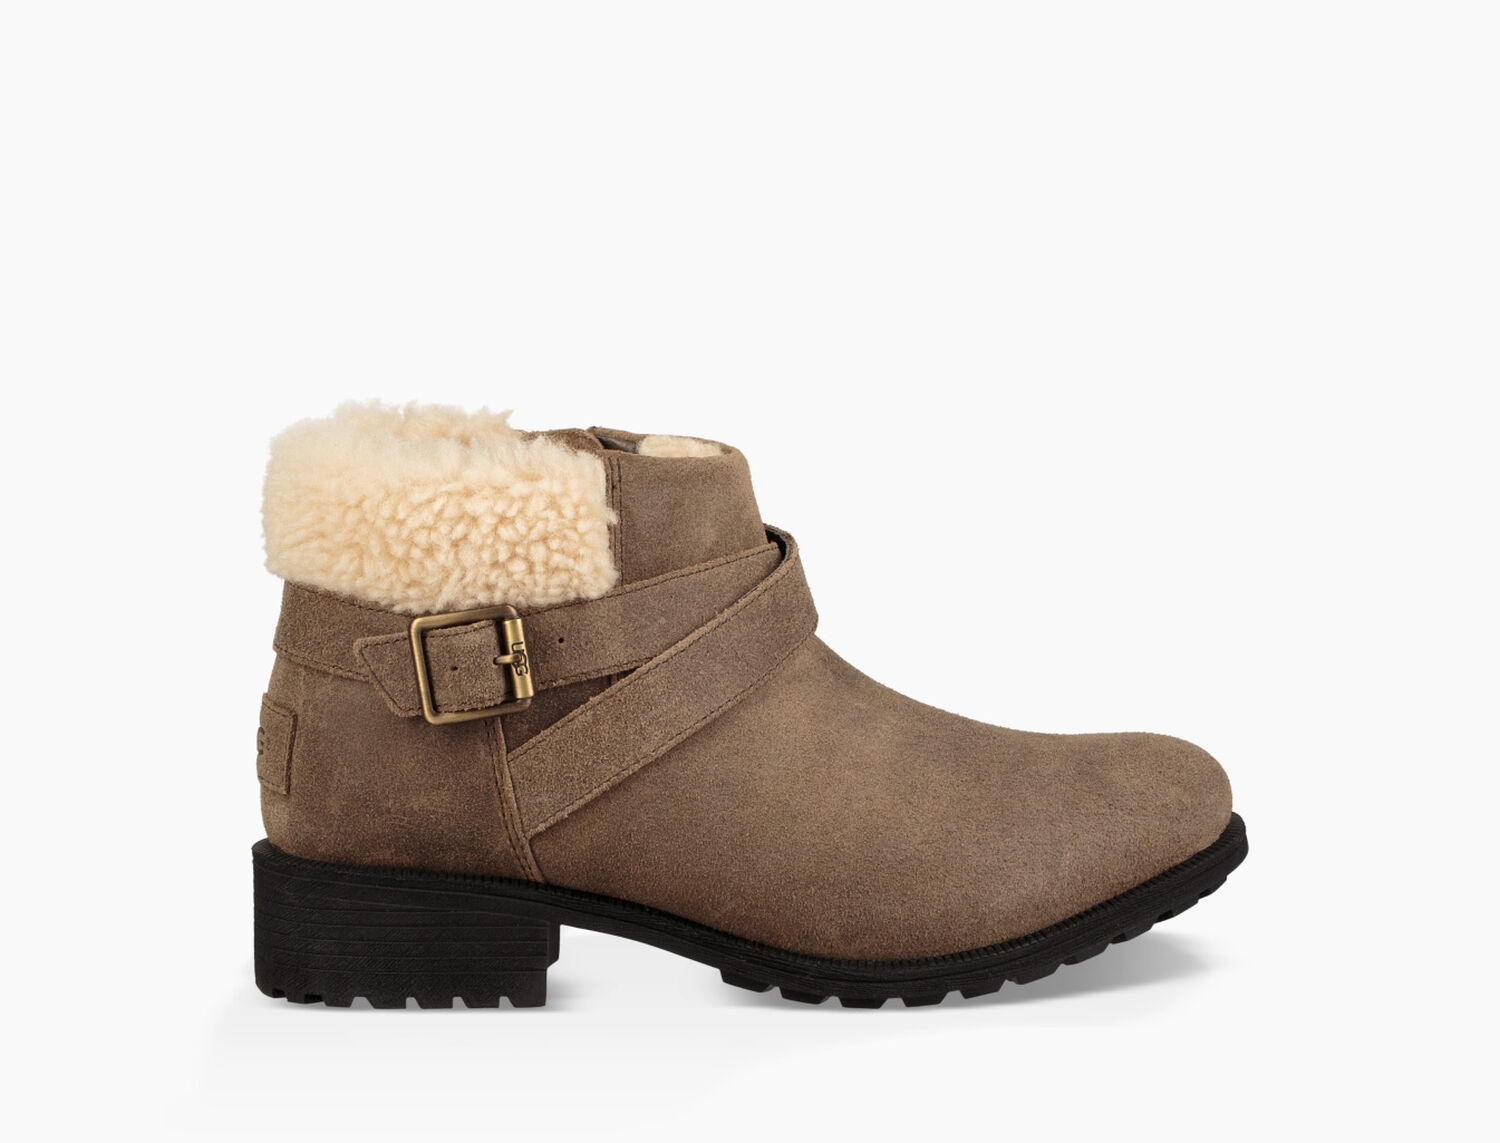 5799444f2e7 Women's Share this product Benson Boot